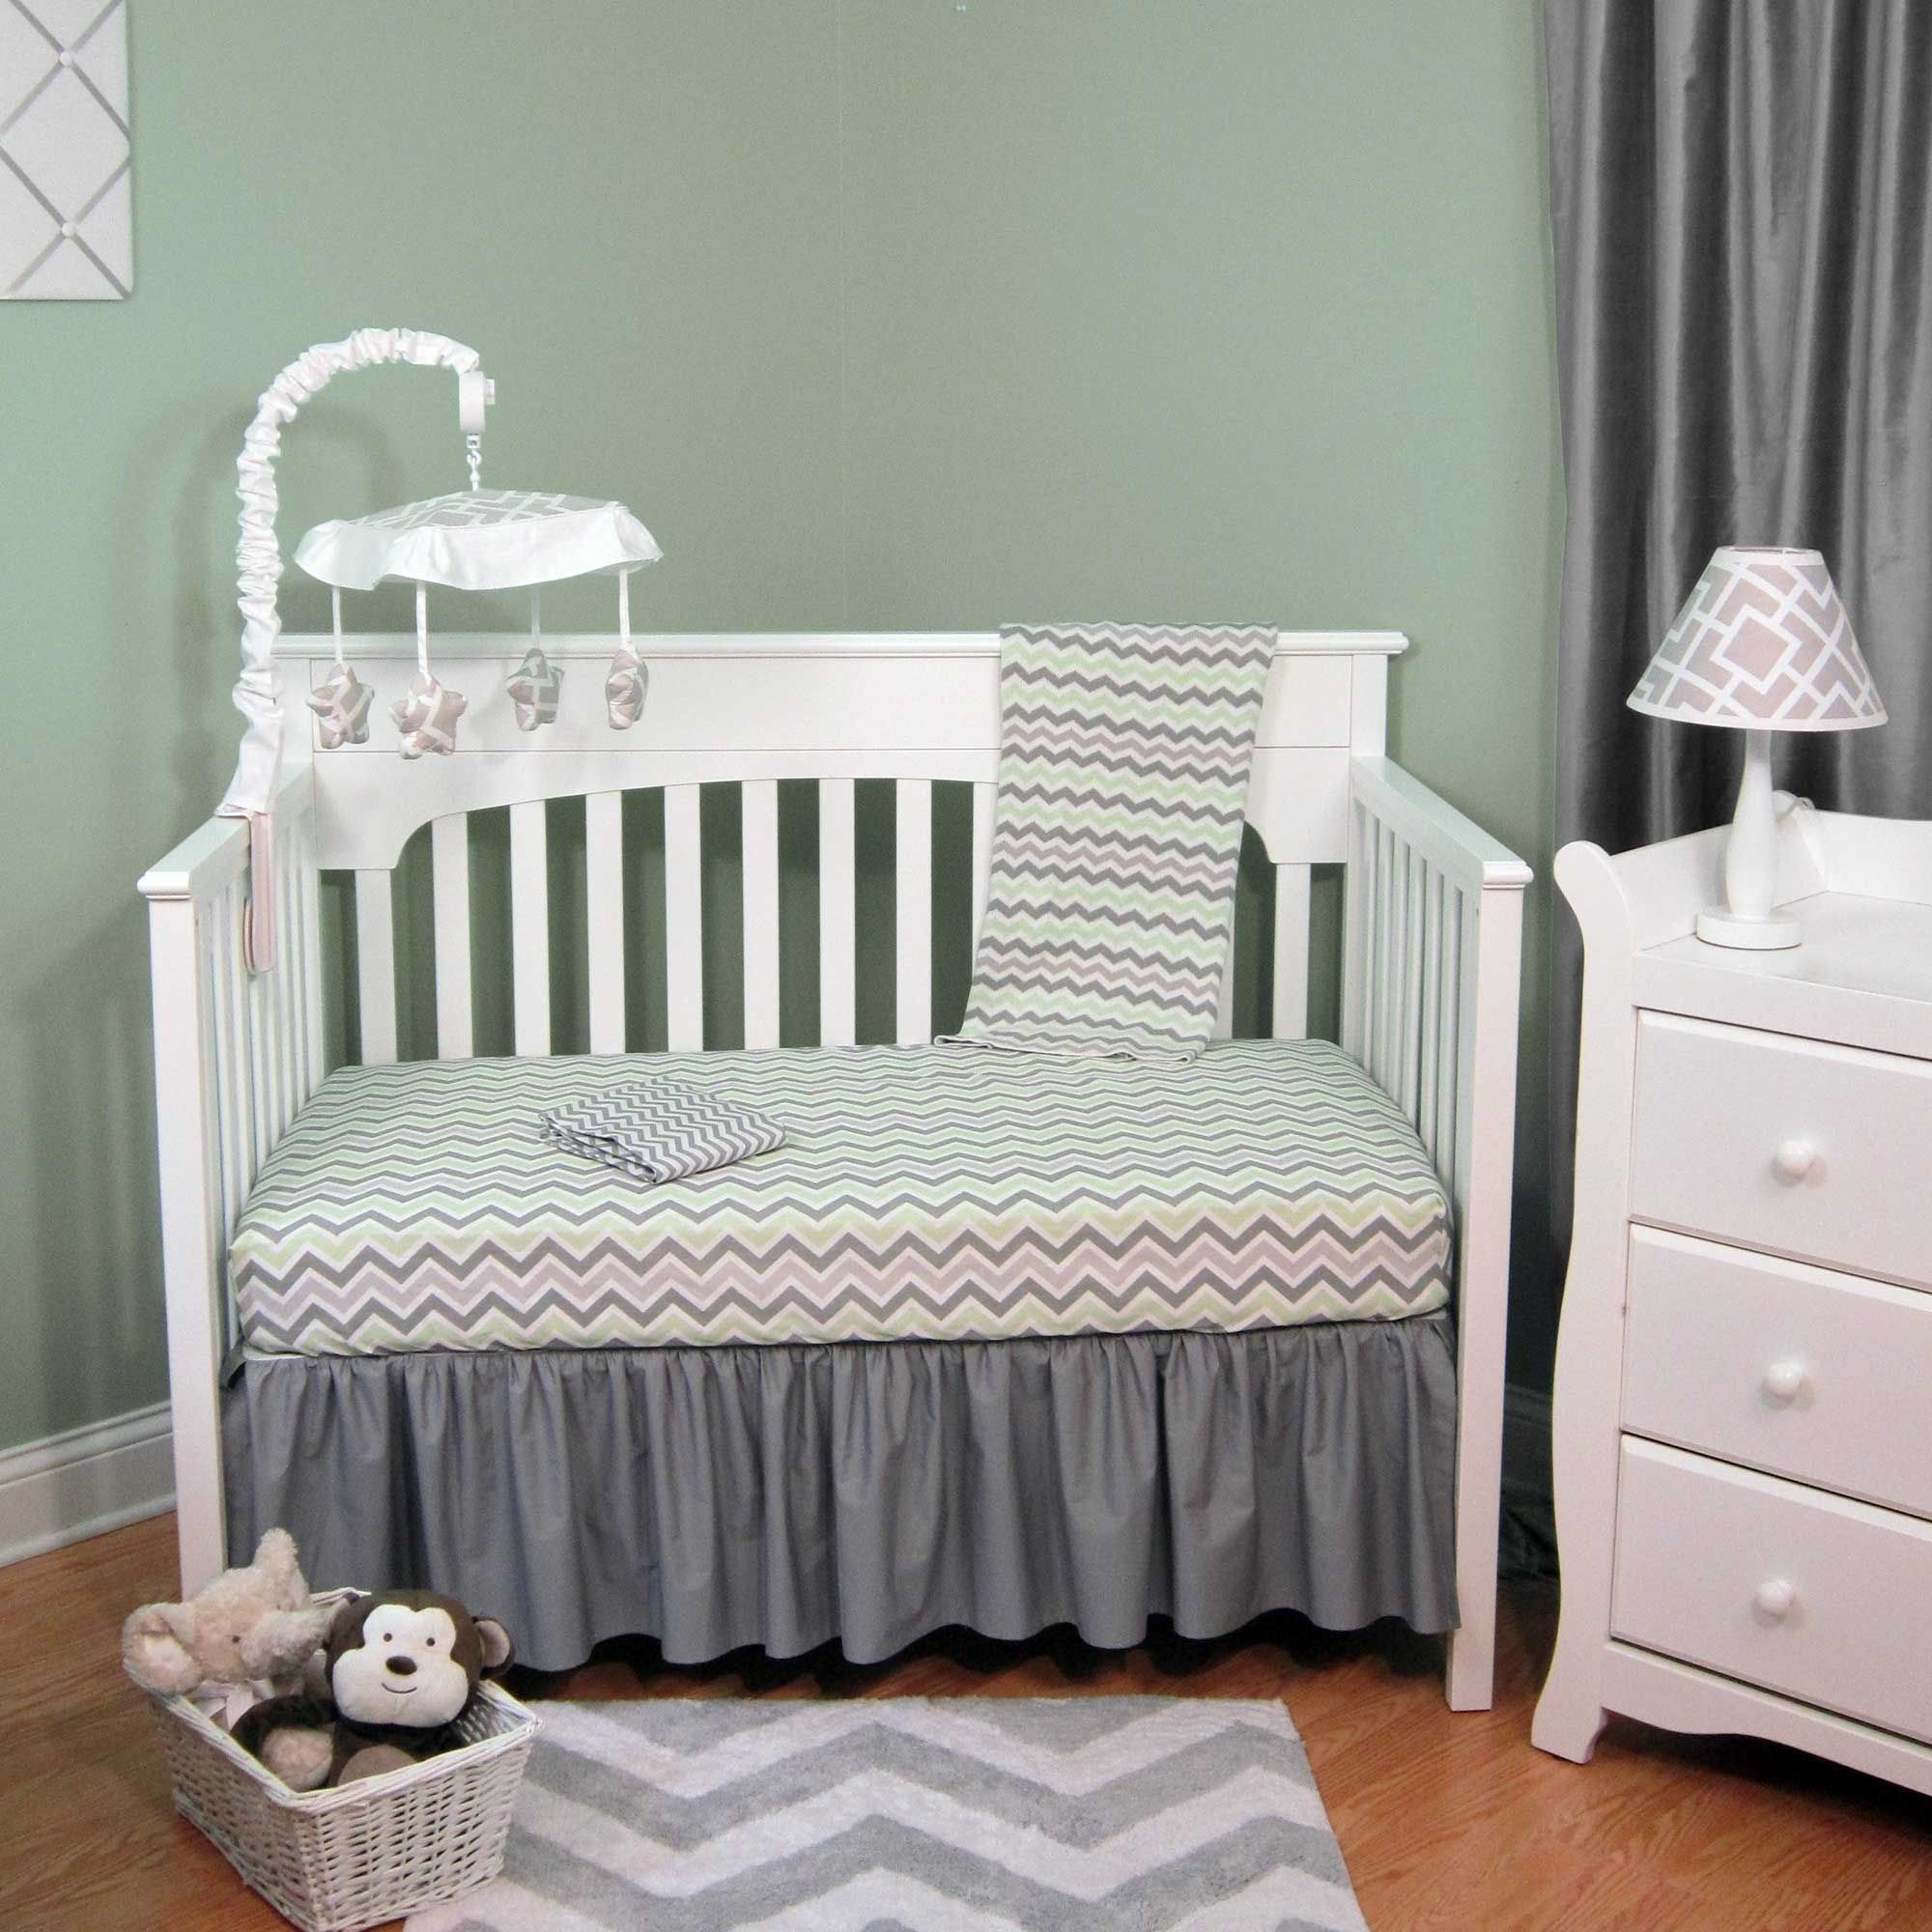 Baby cribs green - Abc Green Grey Chevron Four Piece Baby Crib Bedding Set